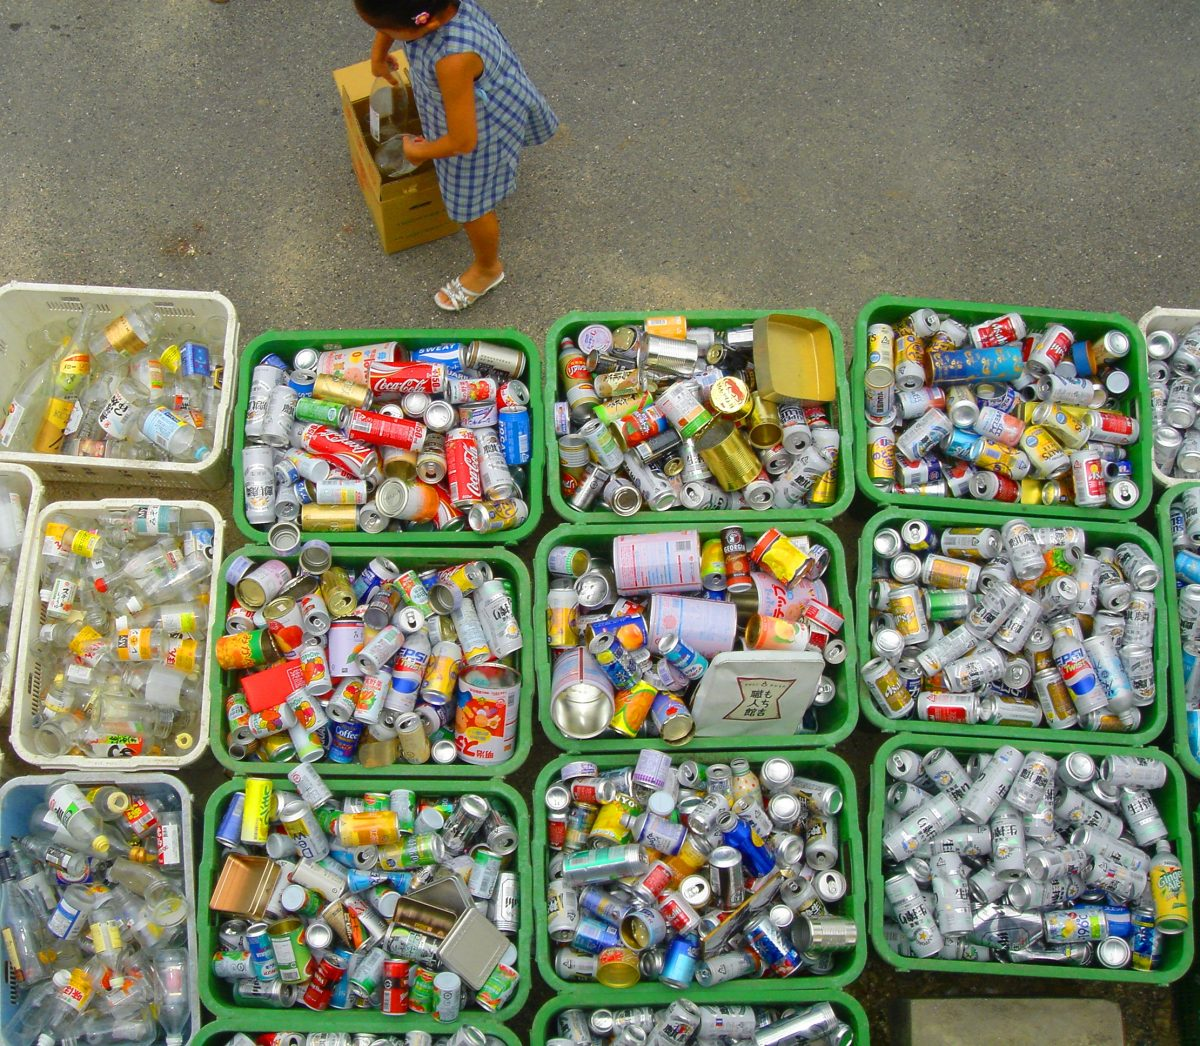 Aerial photo of recycling materials in bins.